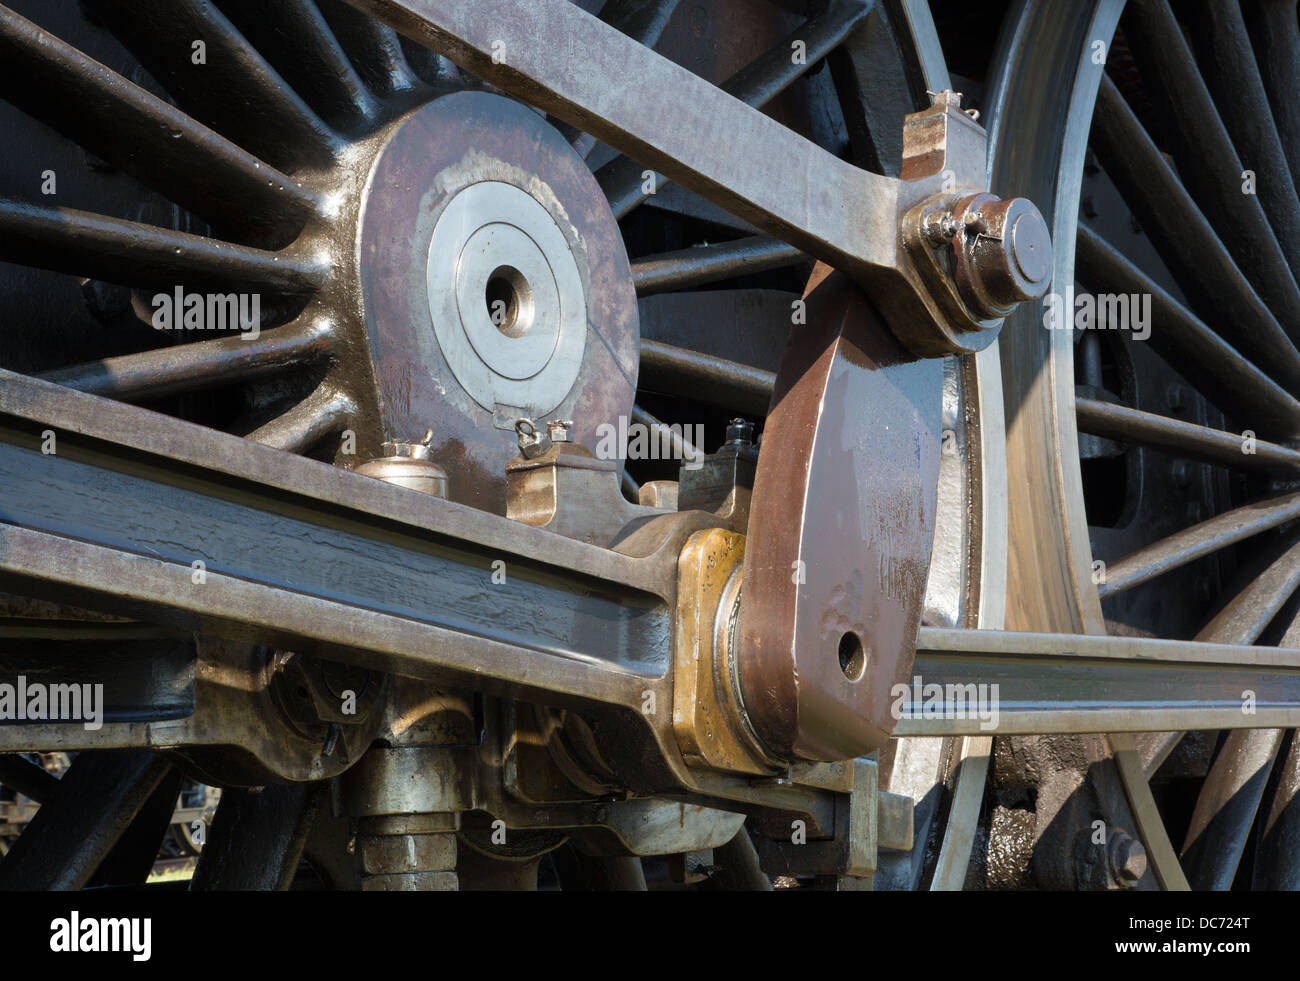 detail of driving rod mechanism on old steam locomotive - Stock Image